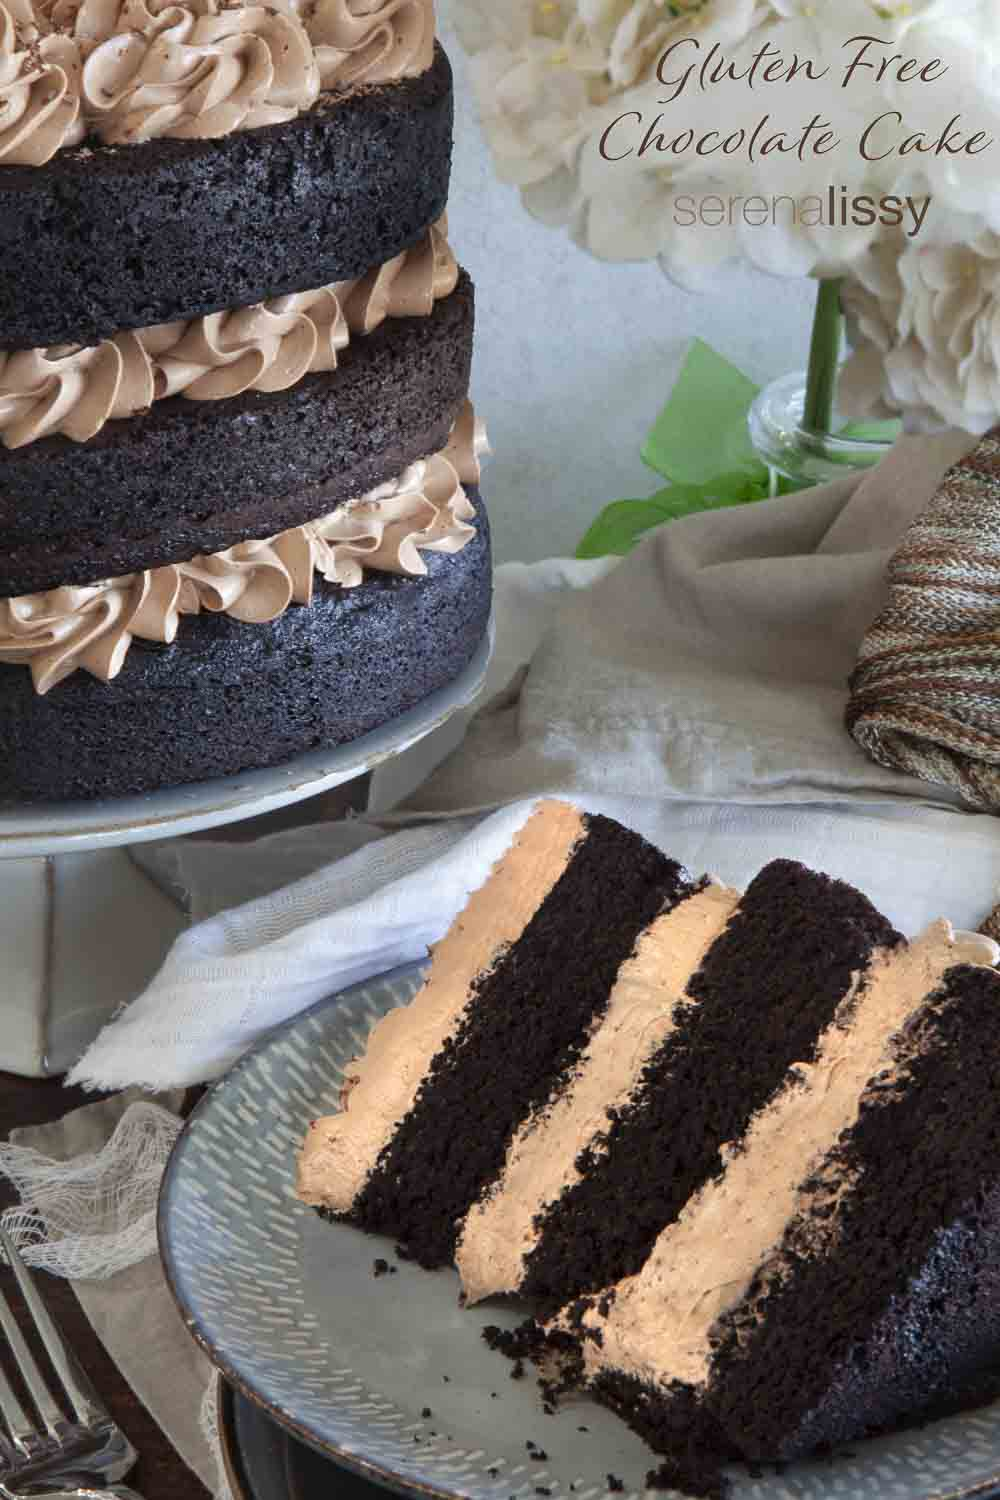 Slice of three layer cake next to the cake on a stand.